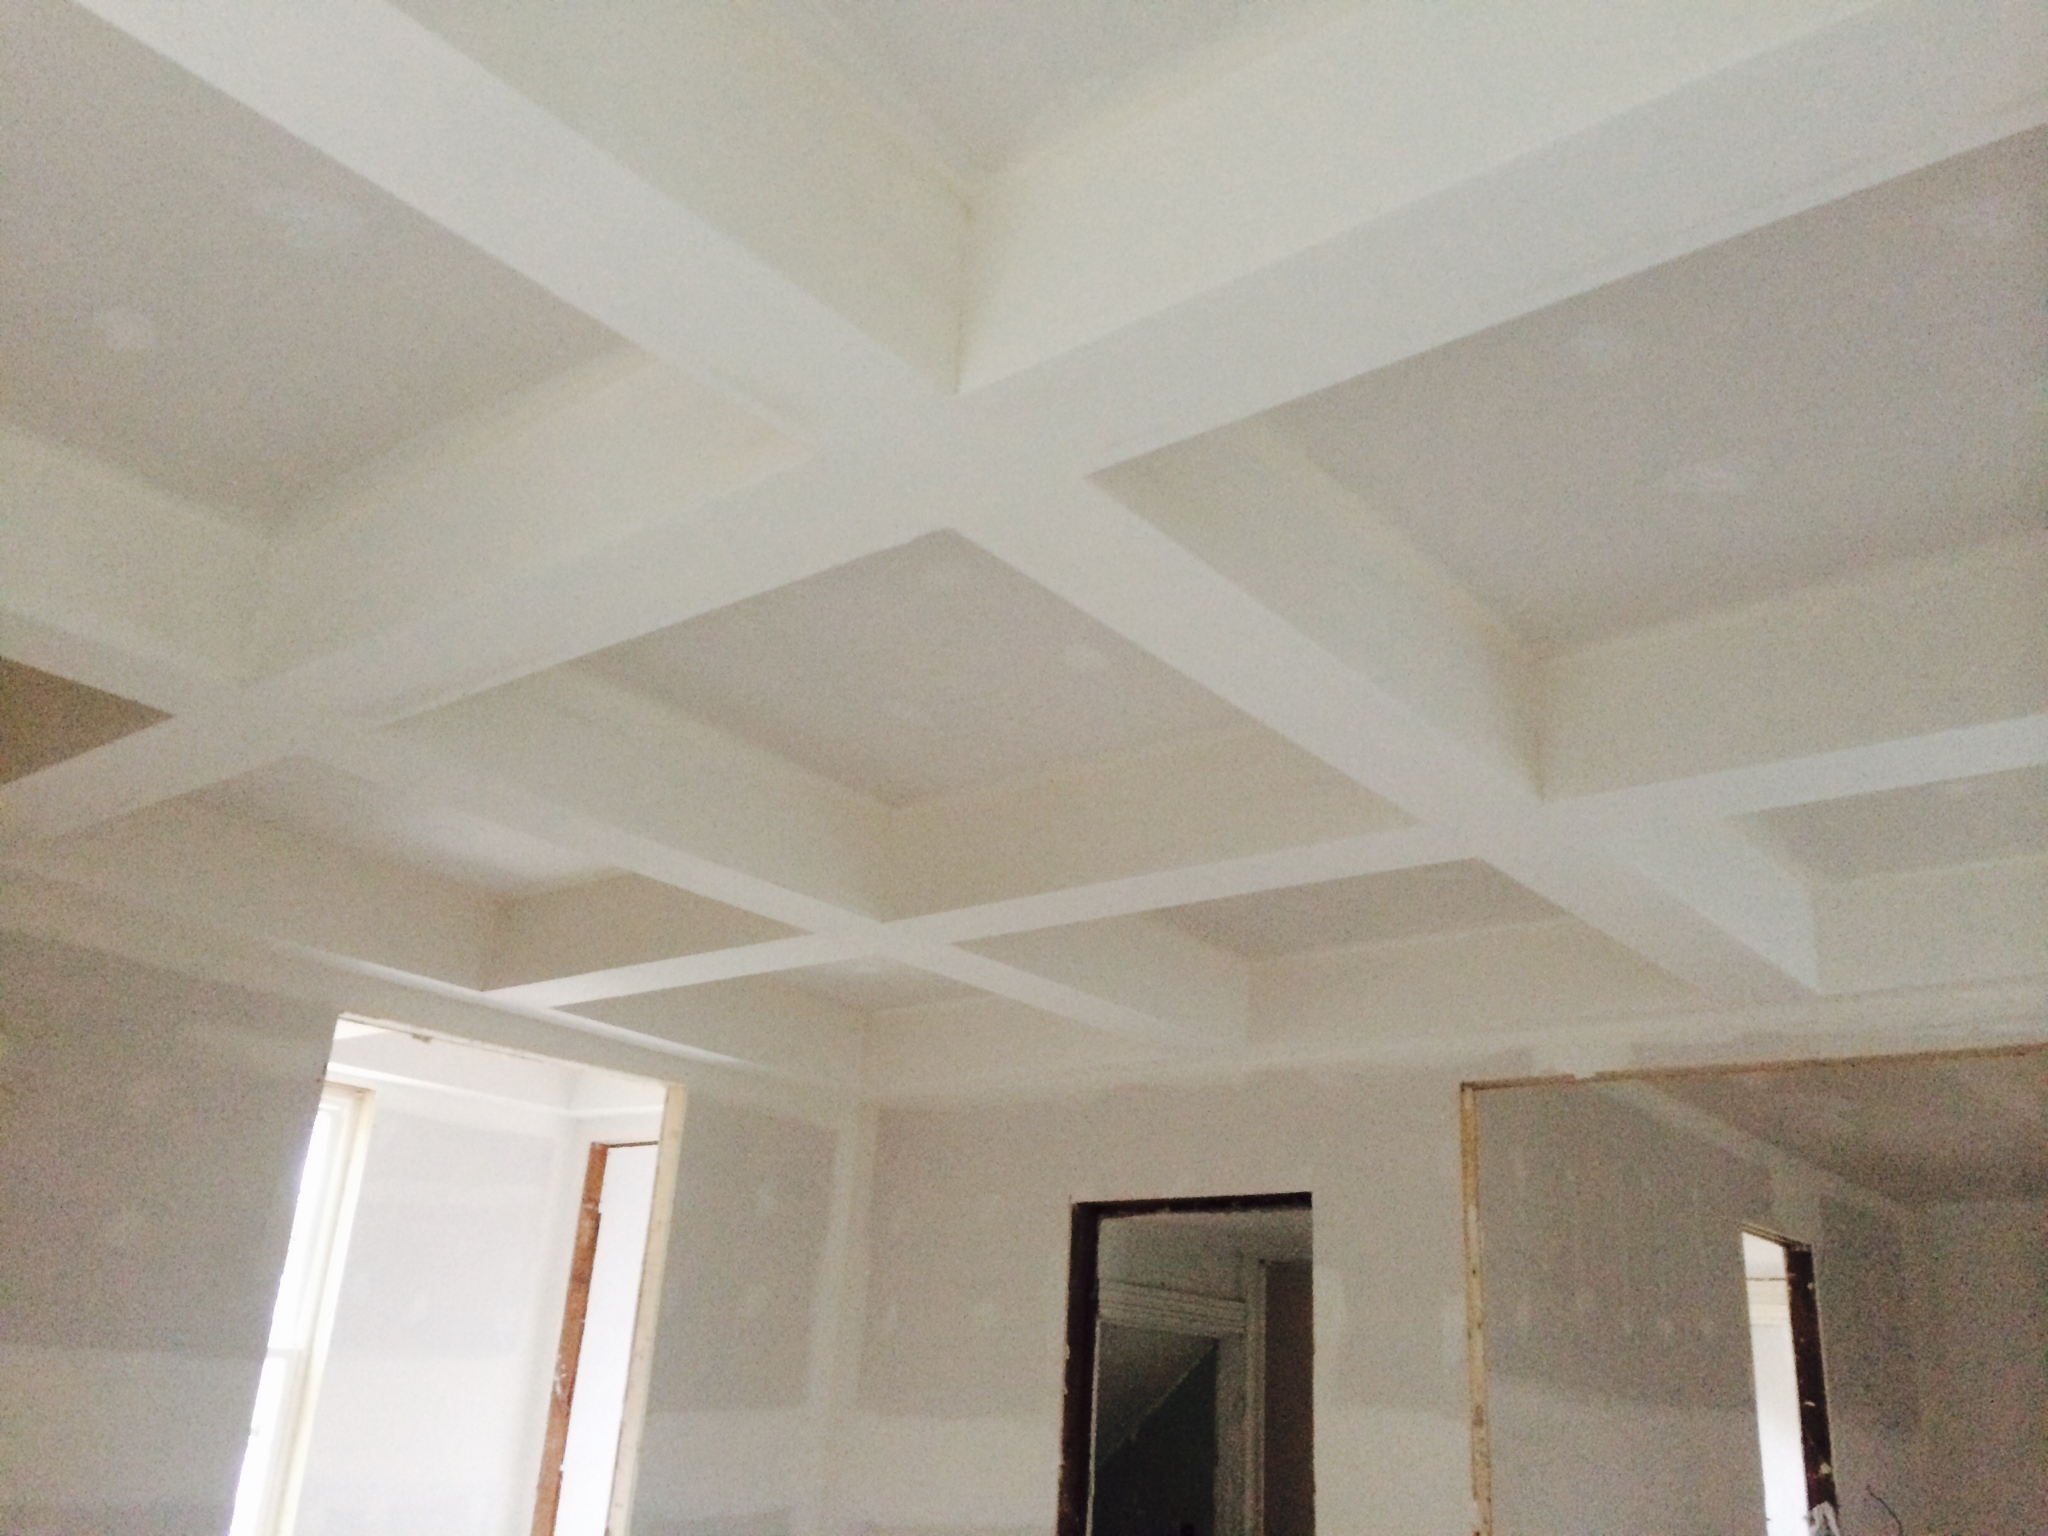 new drywall and coffered ceiling.JPG